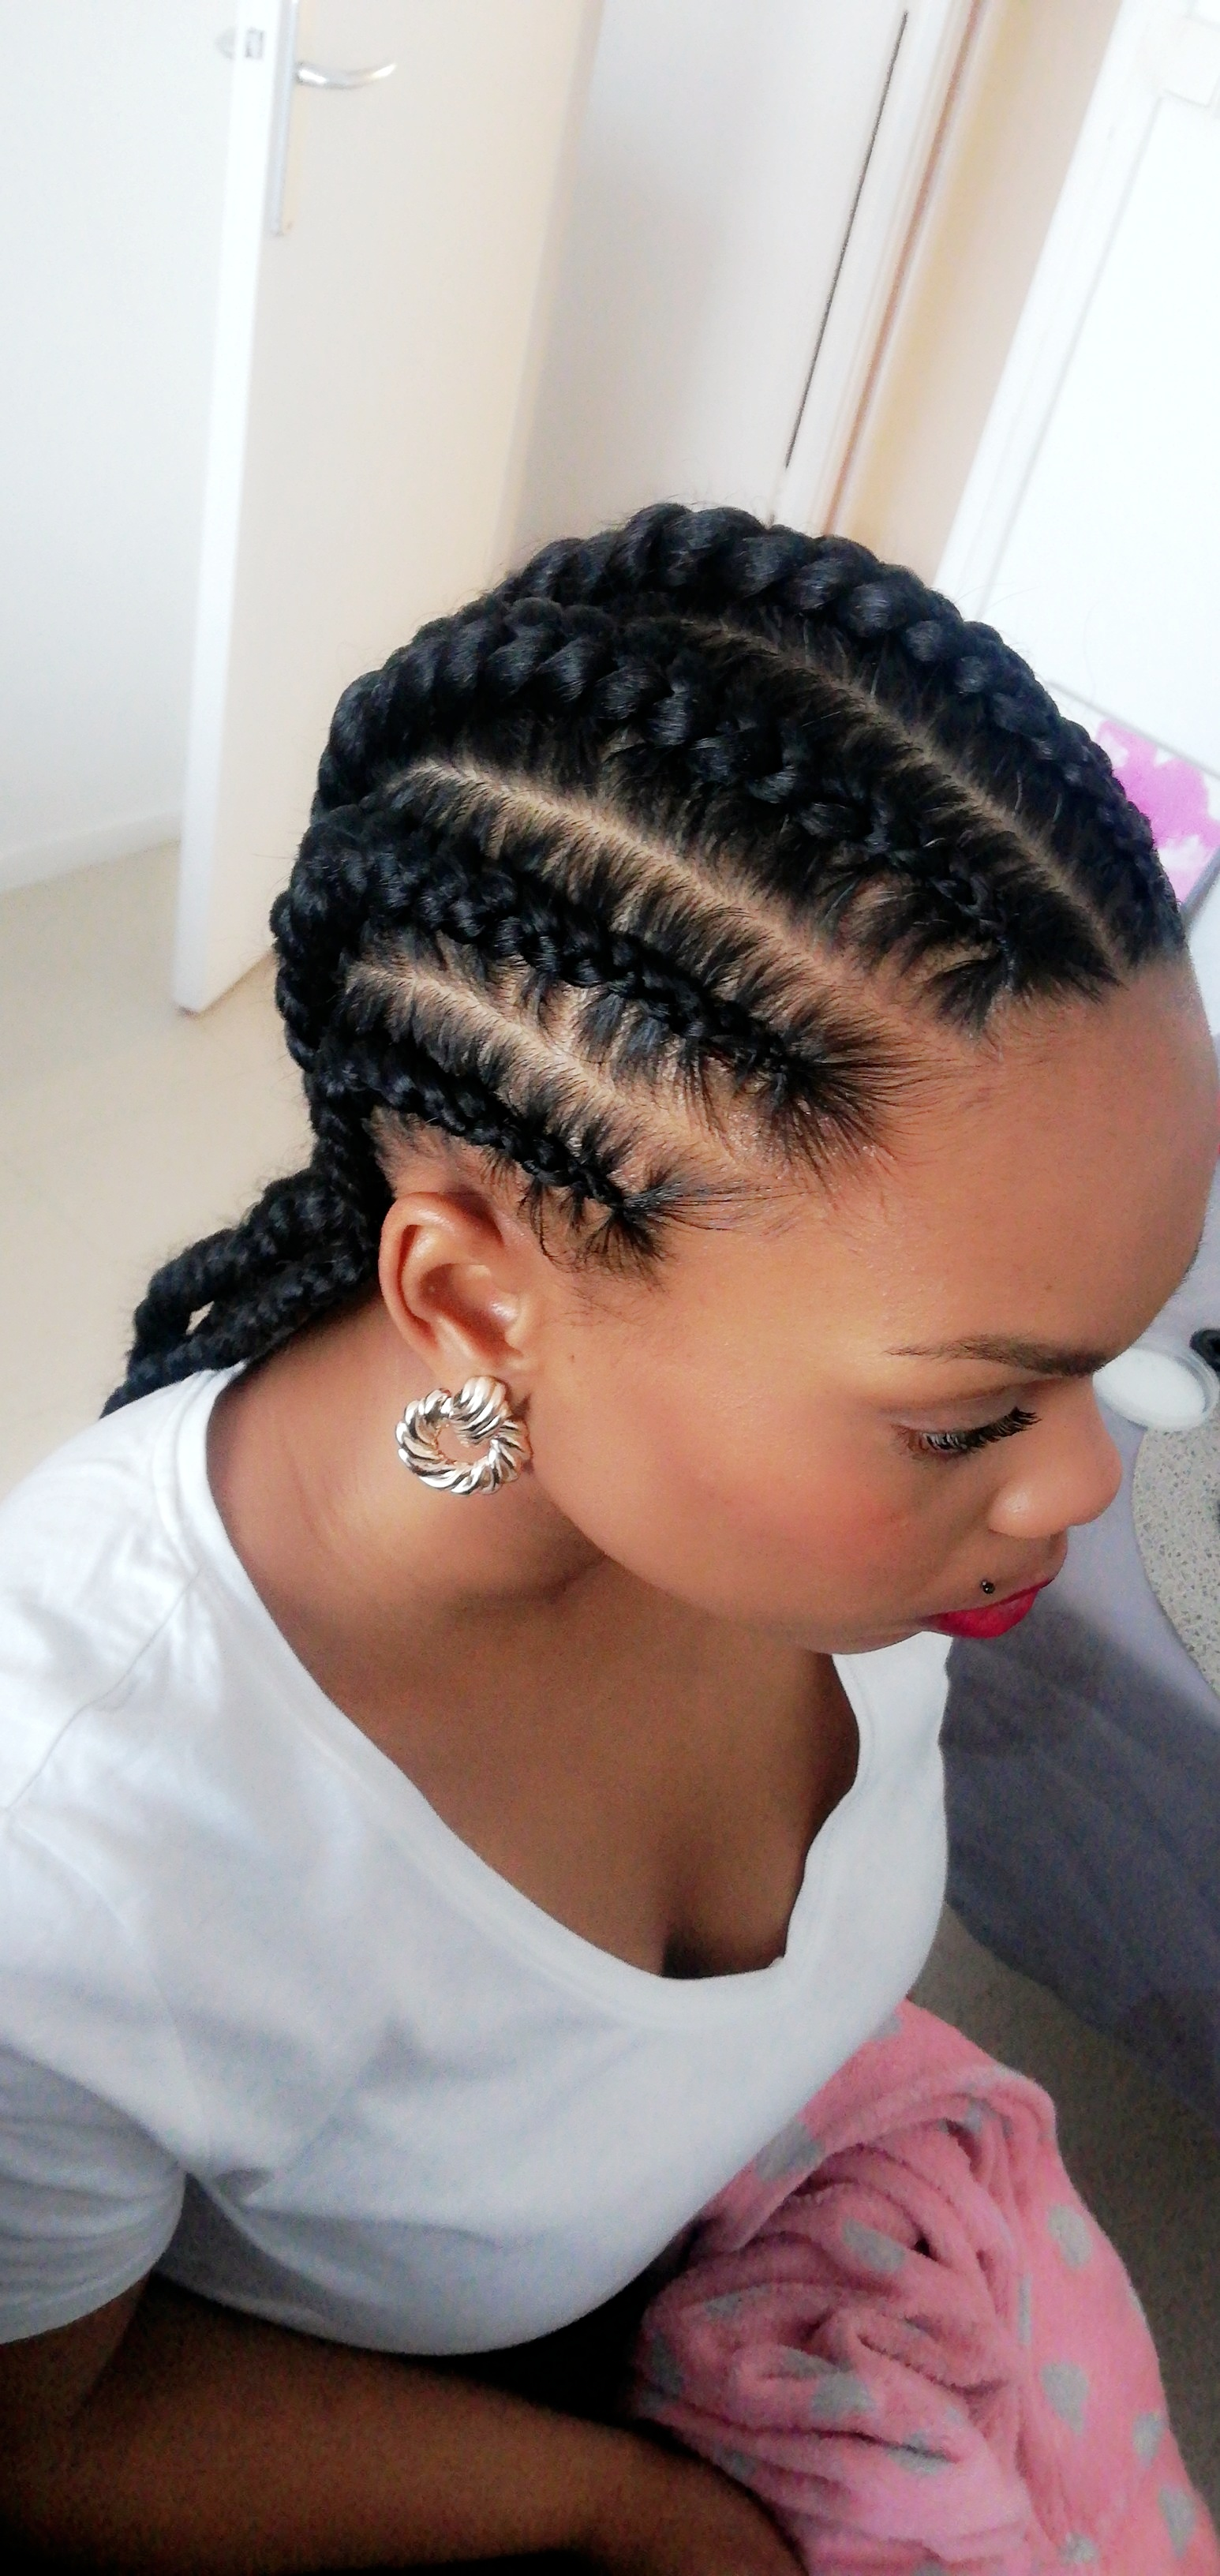 salon de coiffure afro tresse tresses box braids crochet braids vanilles tissages paris 75 77 78 91 92 93 94 95 RBVAIVHU